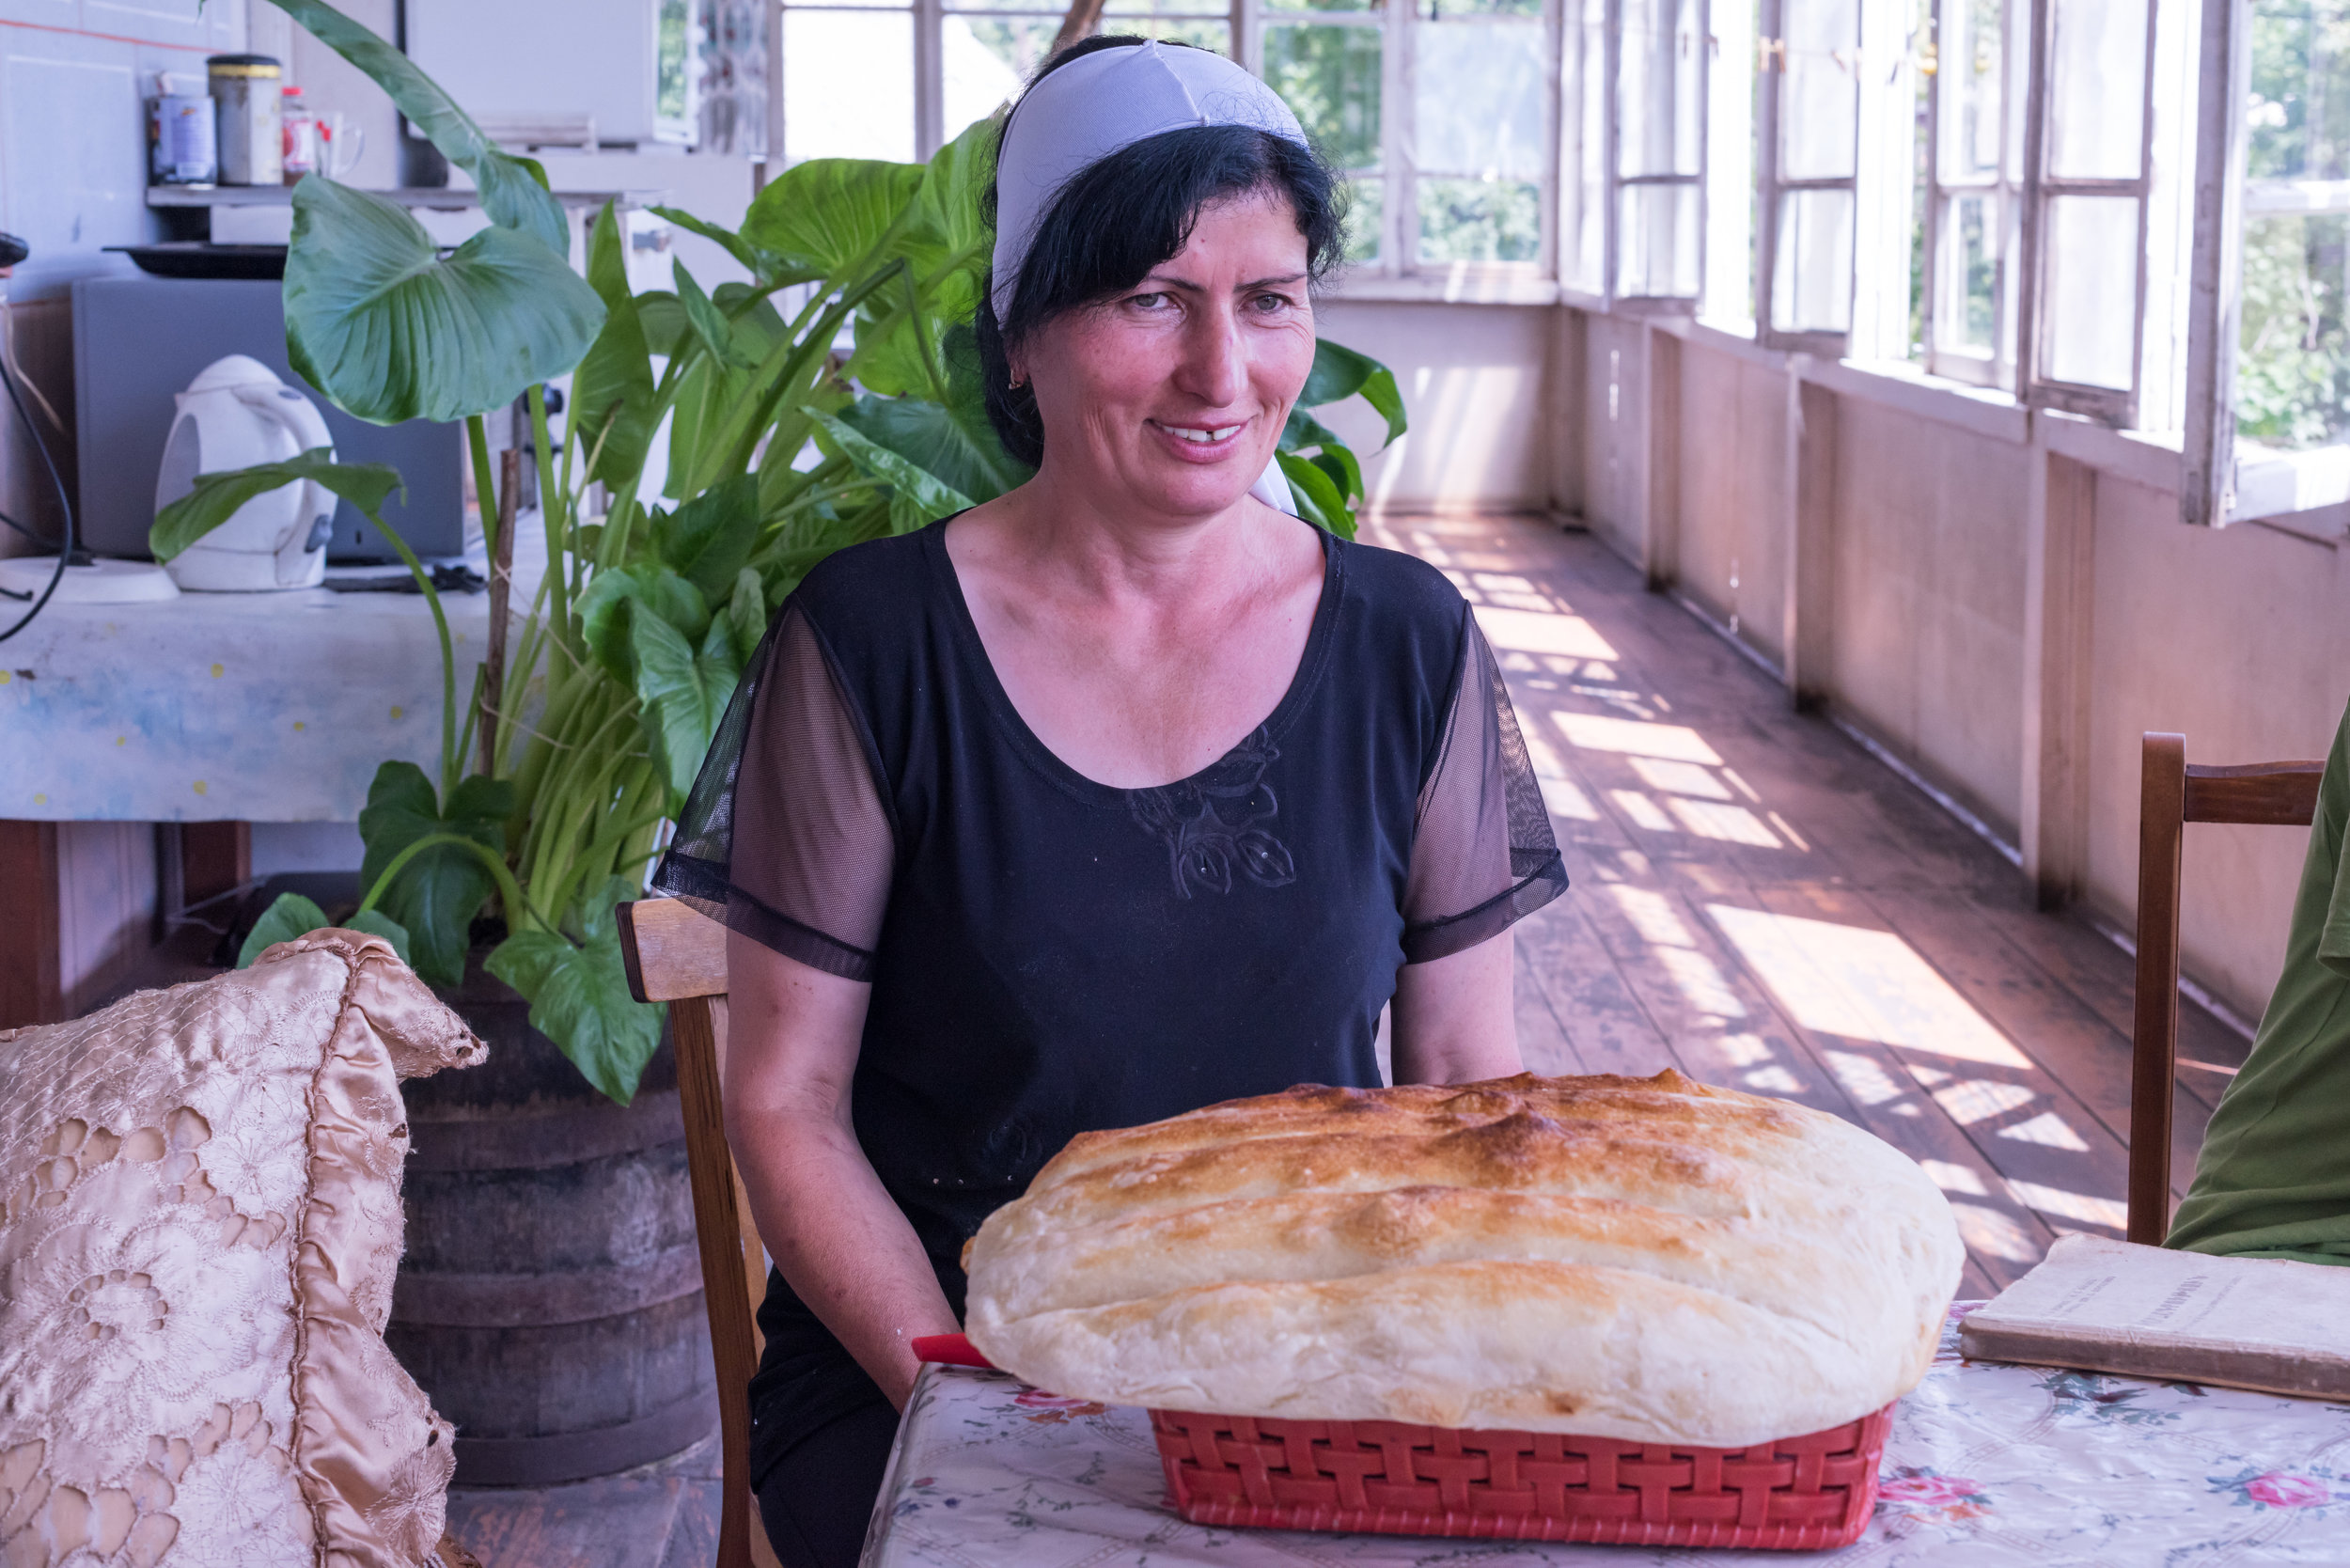 Narine with her amazing homebaked matnakash bread, where FAR has helped update her home in Navur to provide a healthy environment for her family.